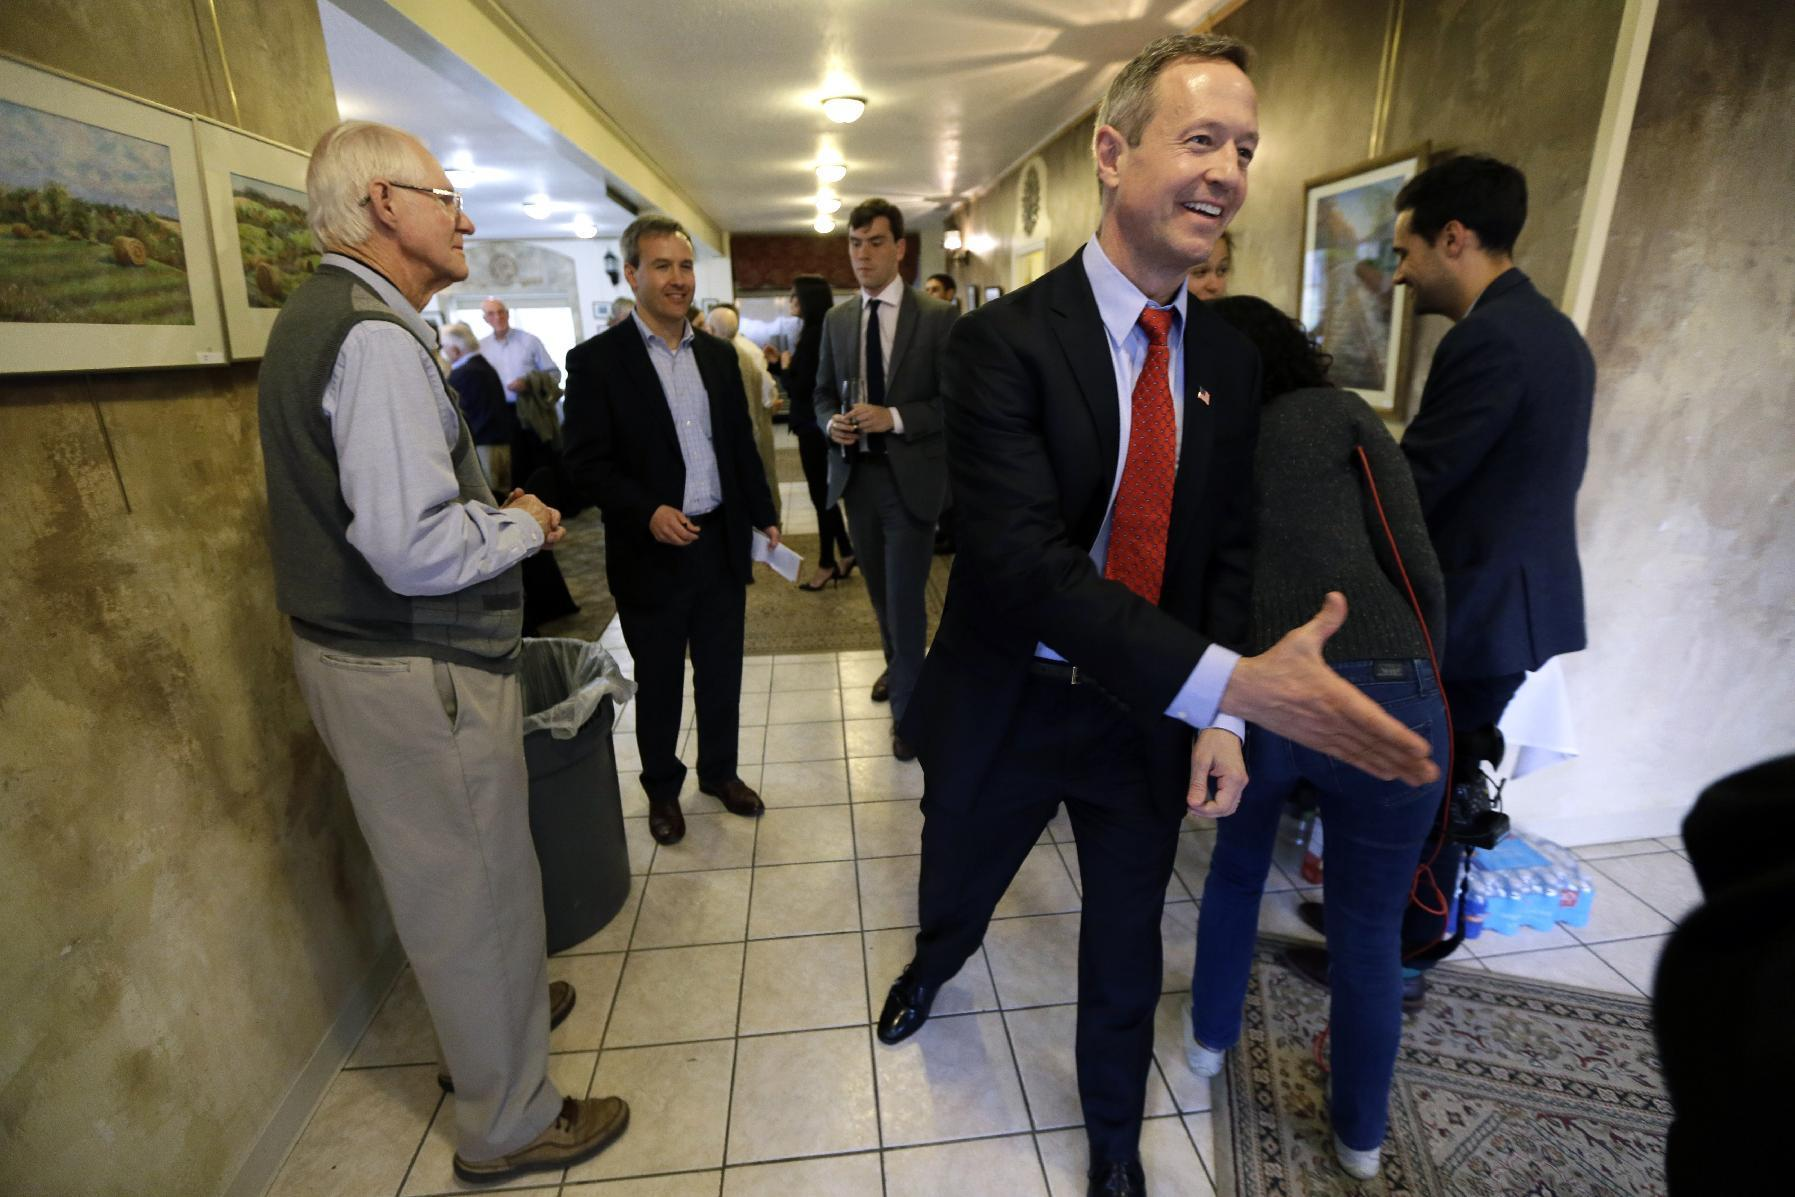 For O'Malley, a lot riding on Iowa in 2016 campaign